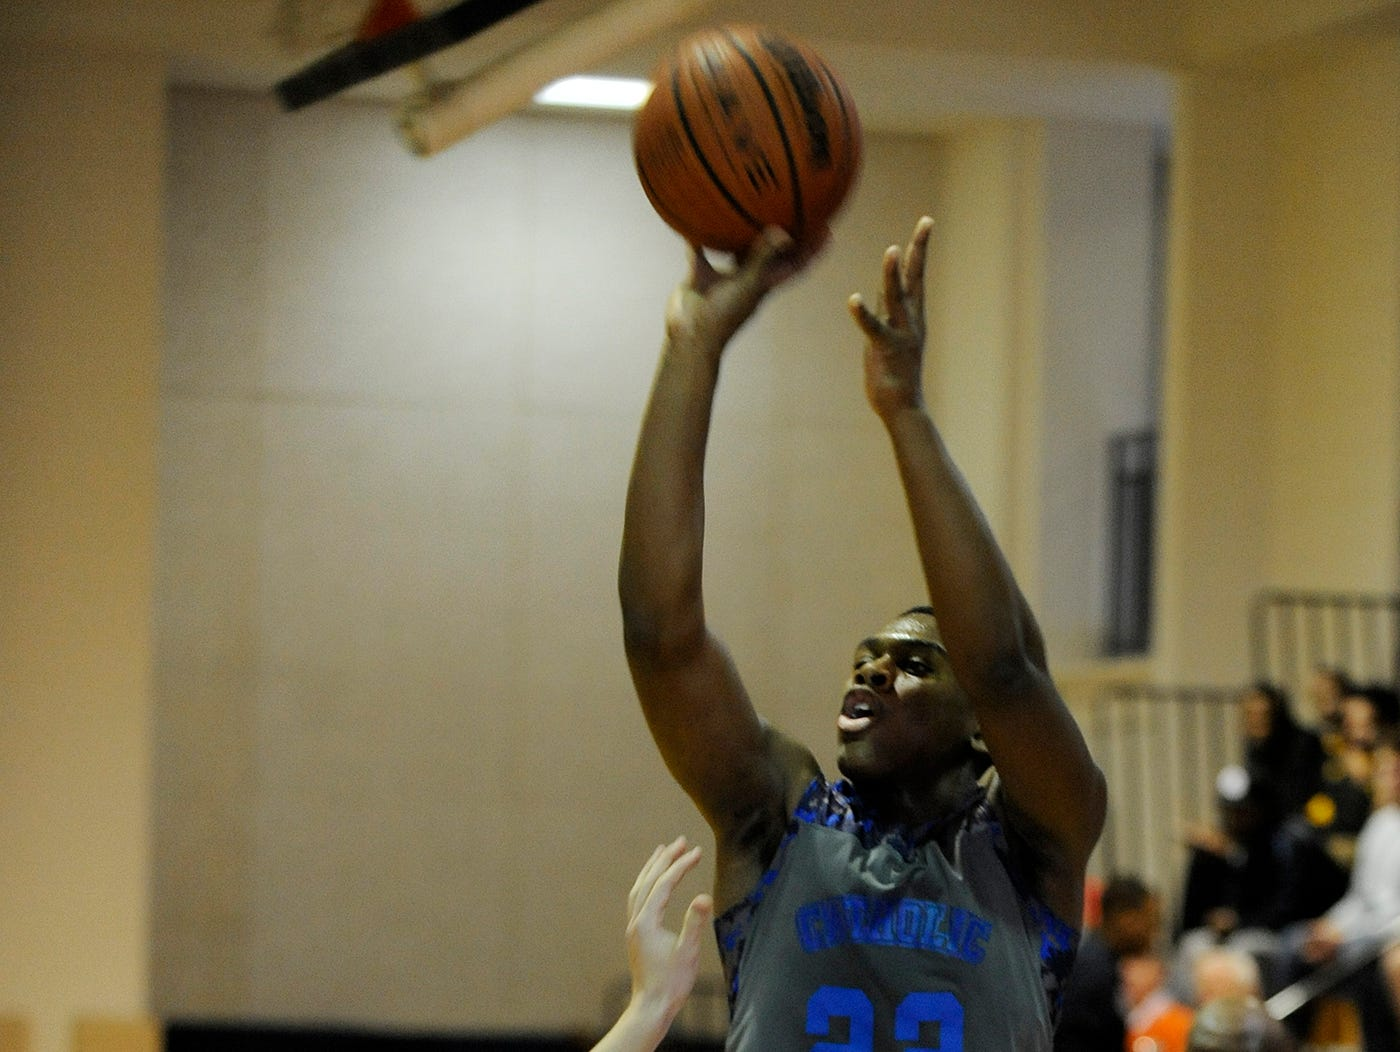 Catholic's Reginald Gee shoots a three point shot against St. James at the St. James campus in Montgomery, Ala. on Saturday February 7, 2015.